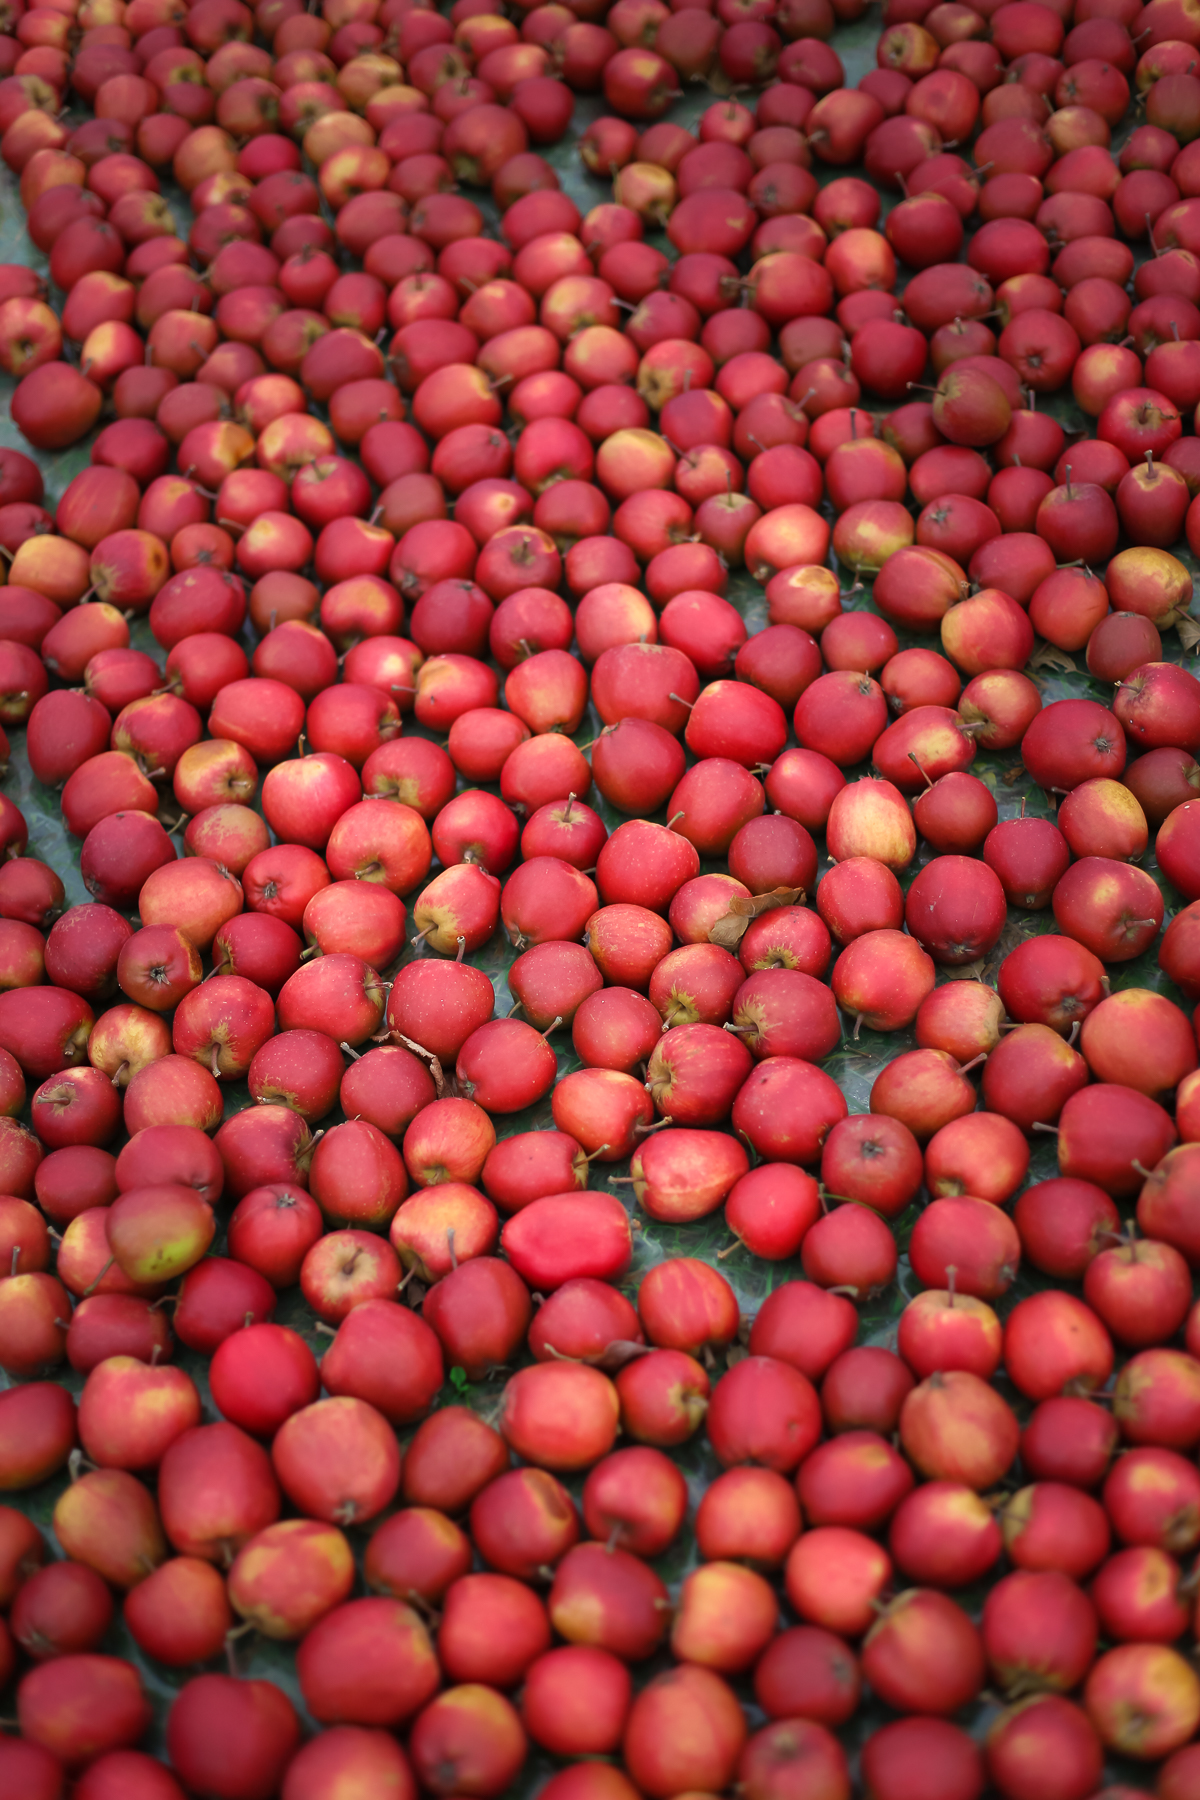 A day trip from Copenhagen  to pick some of Denmark's best apples and pears at the Frydenlunds Frugtplantage outside of Vedbaek.